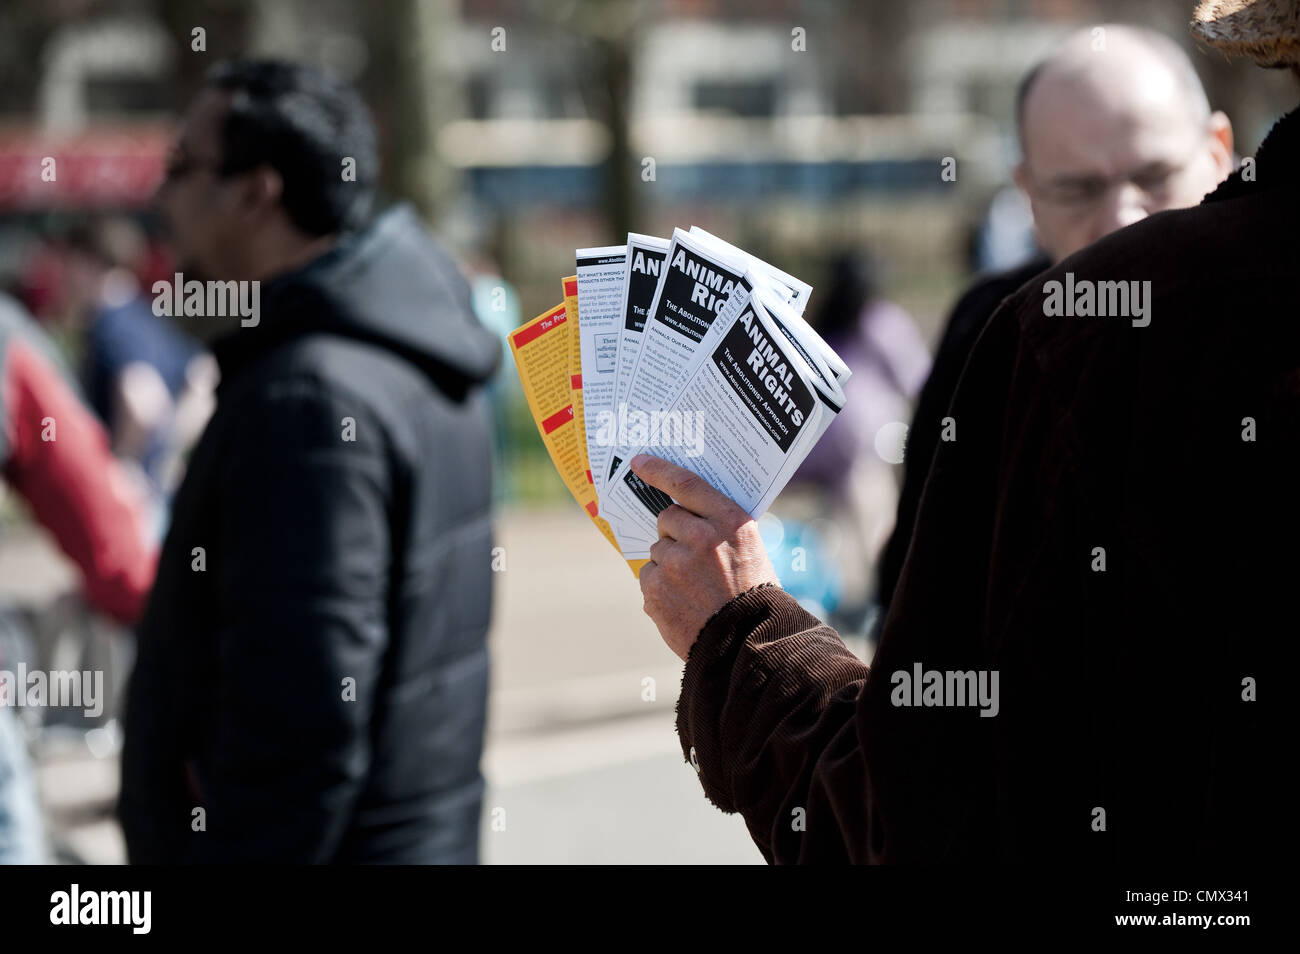 A man holding animal rights leaflets - Stock Image